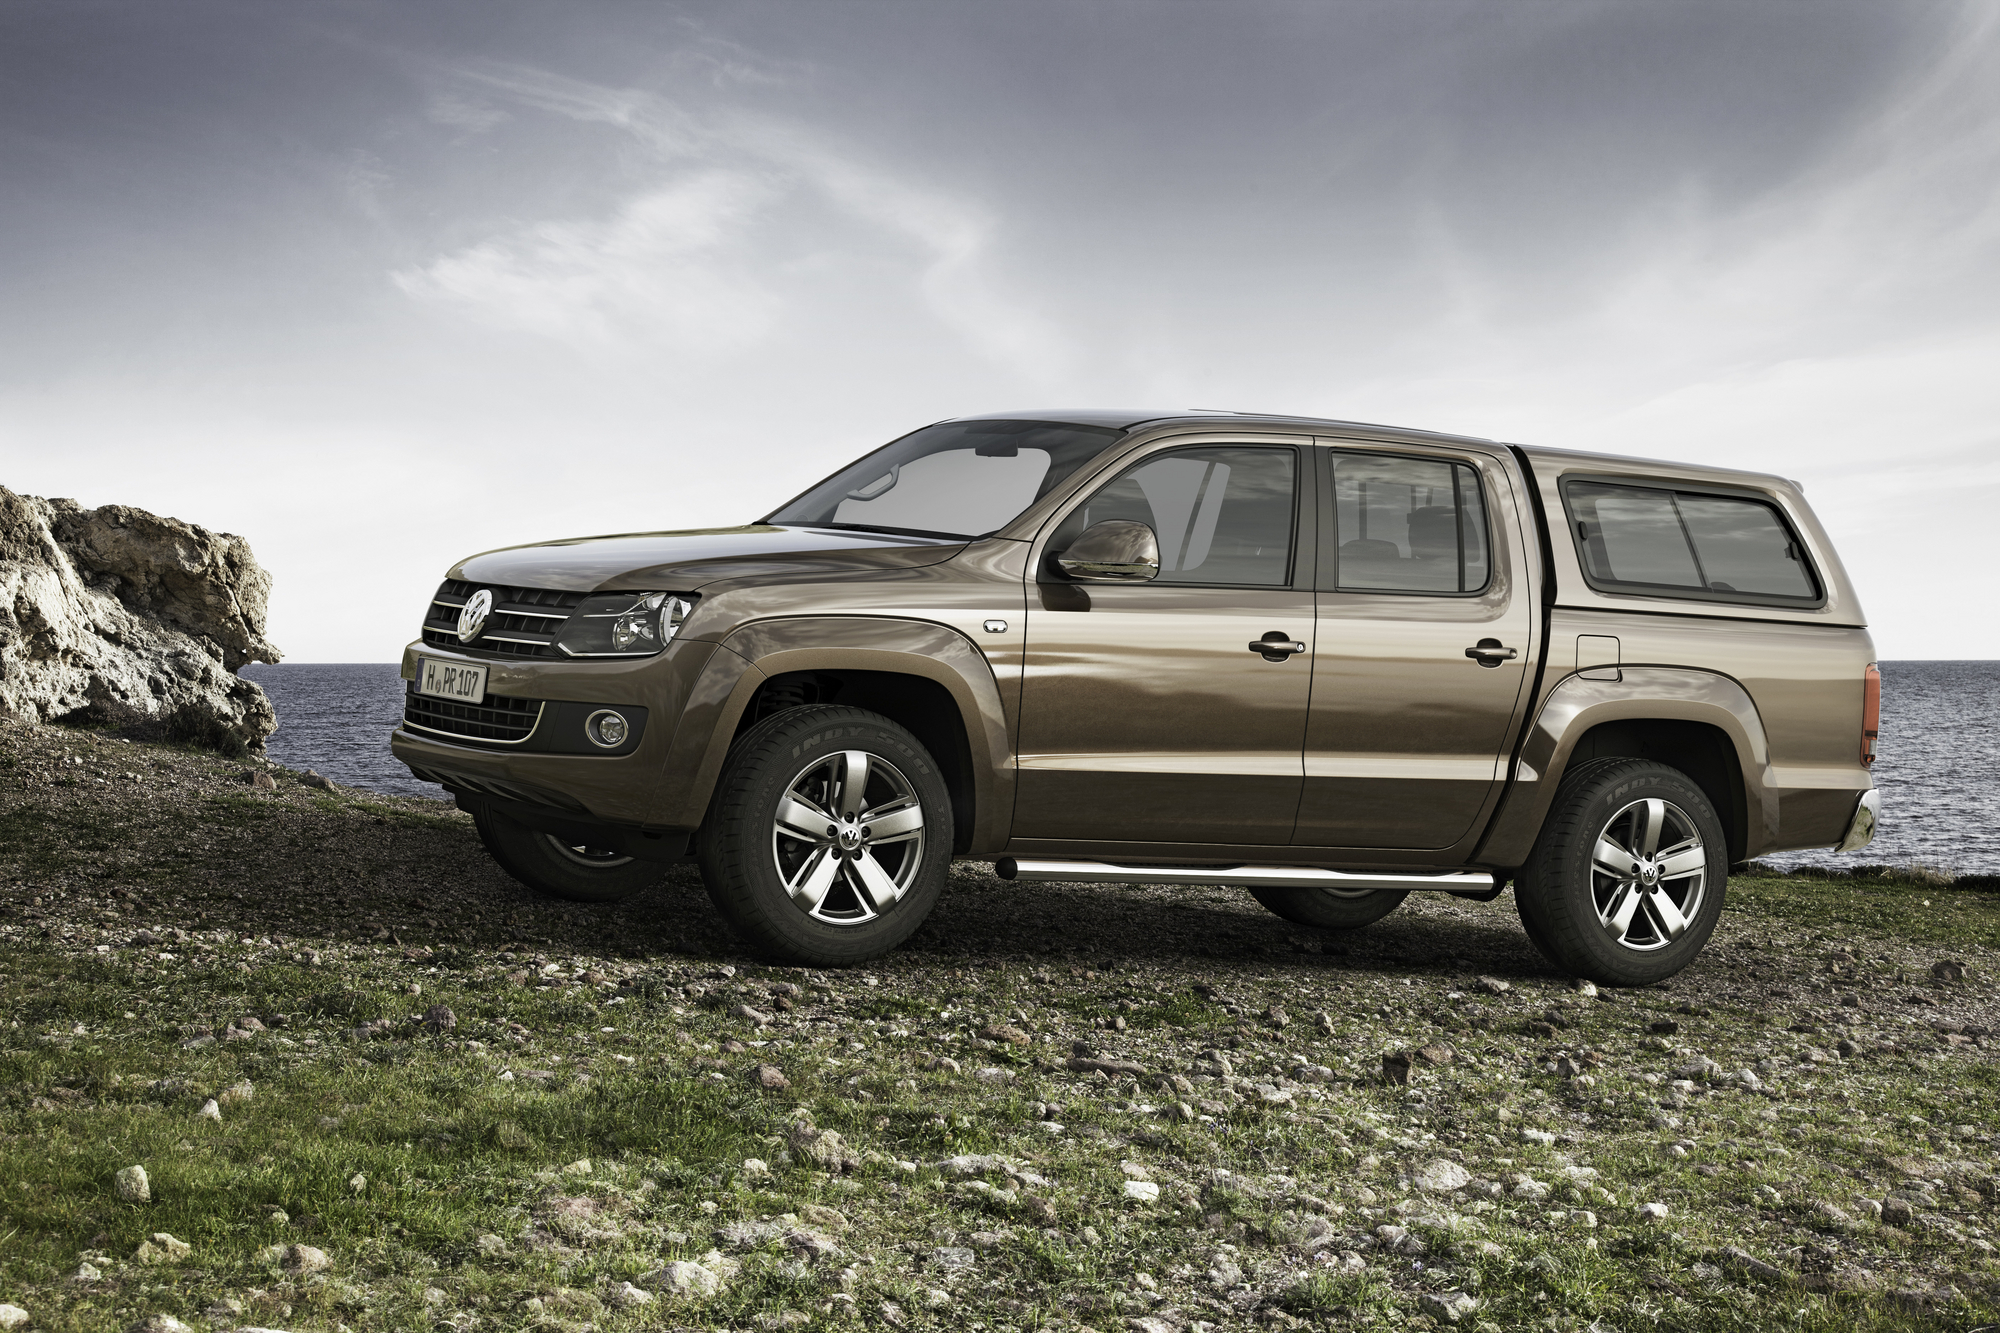 Volkswagen Amarok 2 0 Bi Tdi Highline 4wd Slideshow